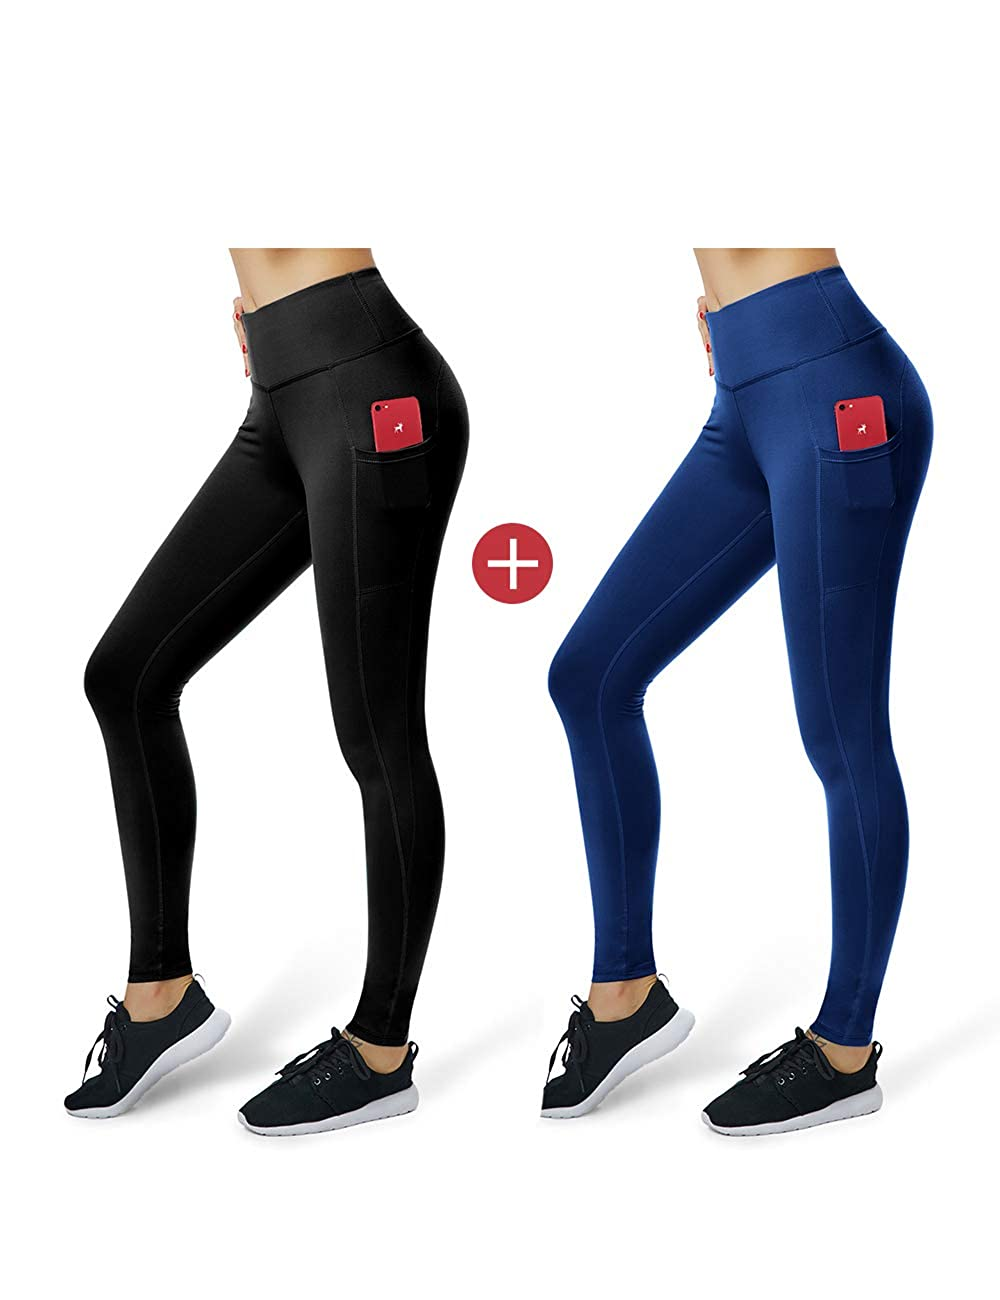 966069a96610b Amazon.com: ALONG FIT High Waist Yoga Pants with Pockets for Women Tummy  Control Yoga Leggings for Workout Running 4 Way Stretch: Clothing